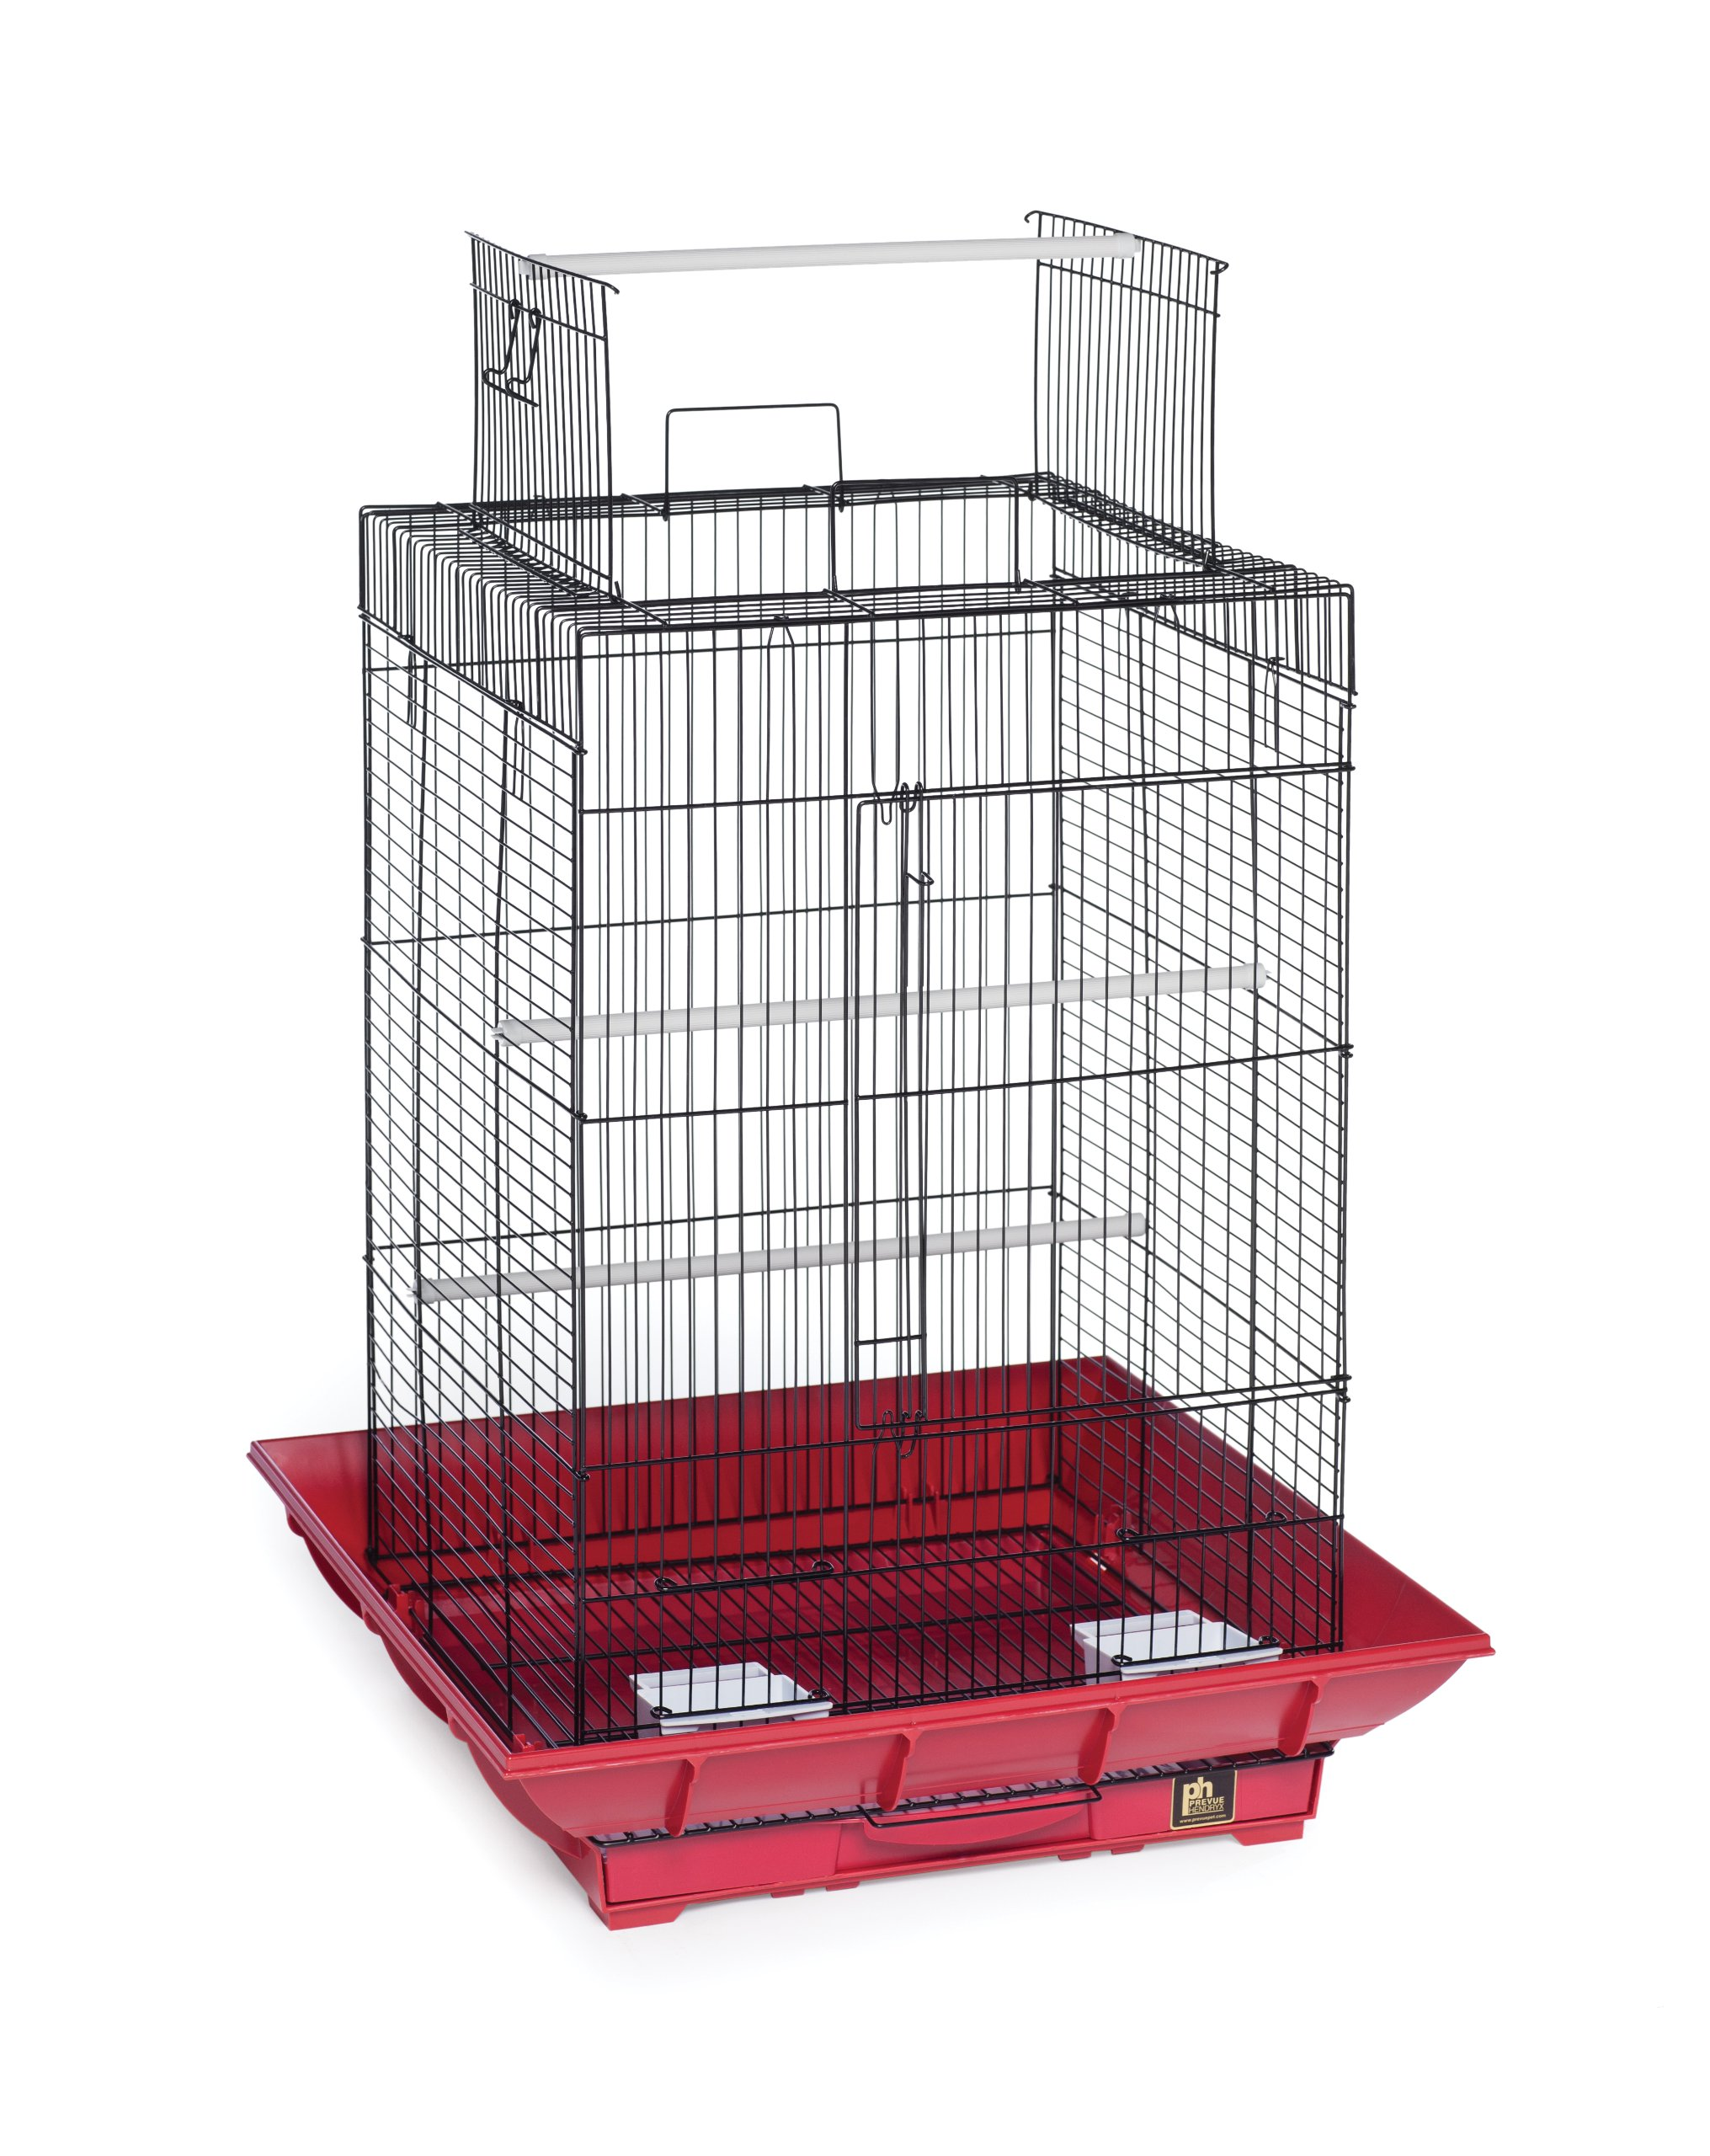 Prevue Hendryx SP851R/B Clean Life Play Top Cage, Red and Black by Prevue Hendryx